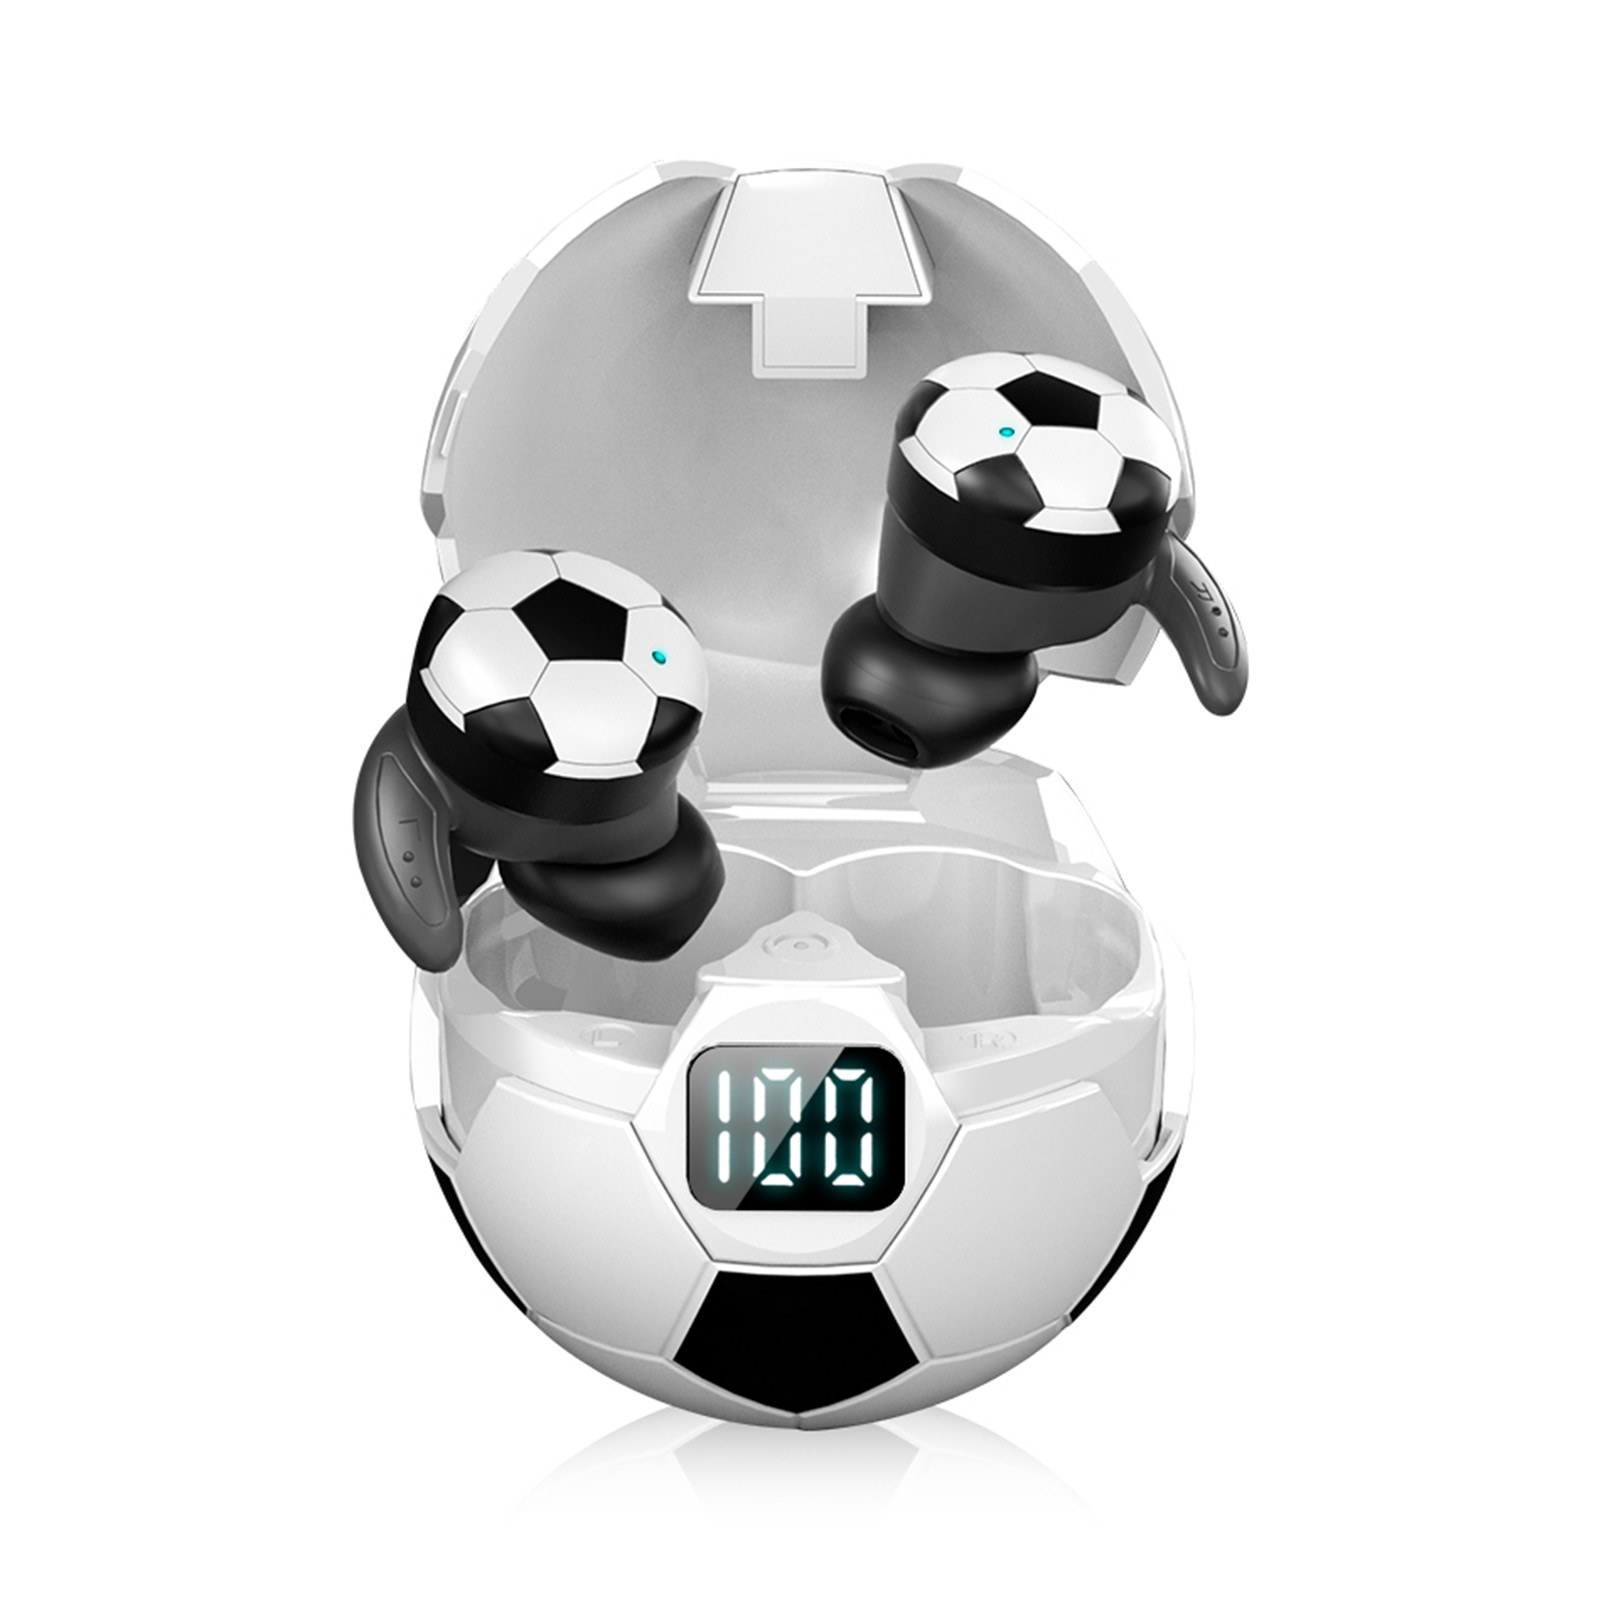 Tomtop - 41% OFF 5.1 BT Wirelessly Earbuds Football Headset, Free Shipping $17.99